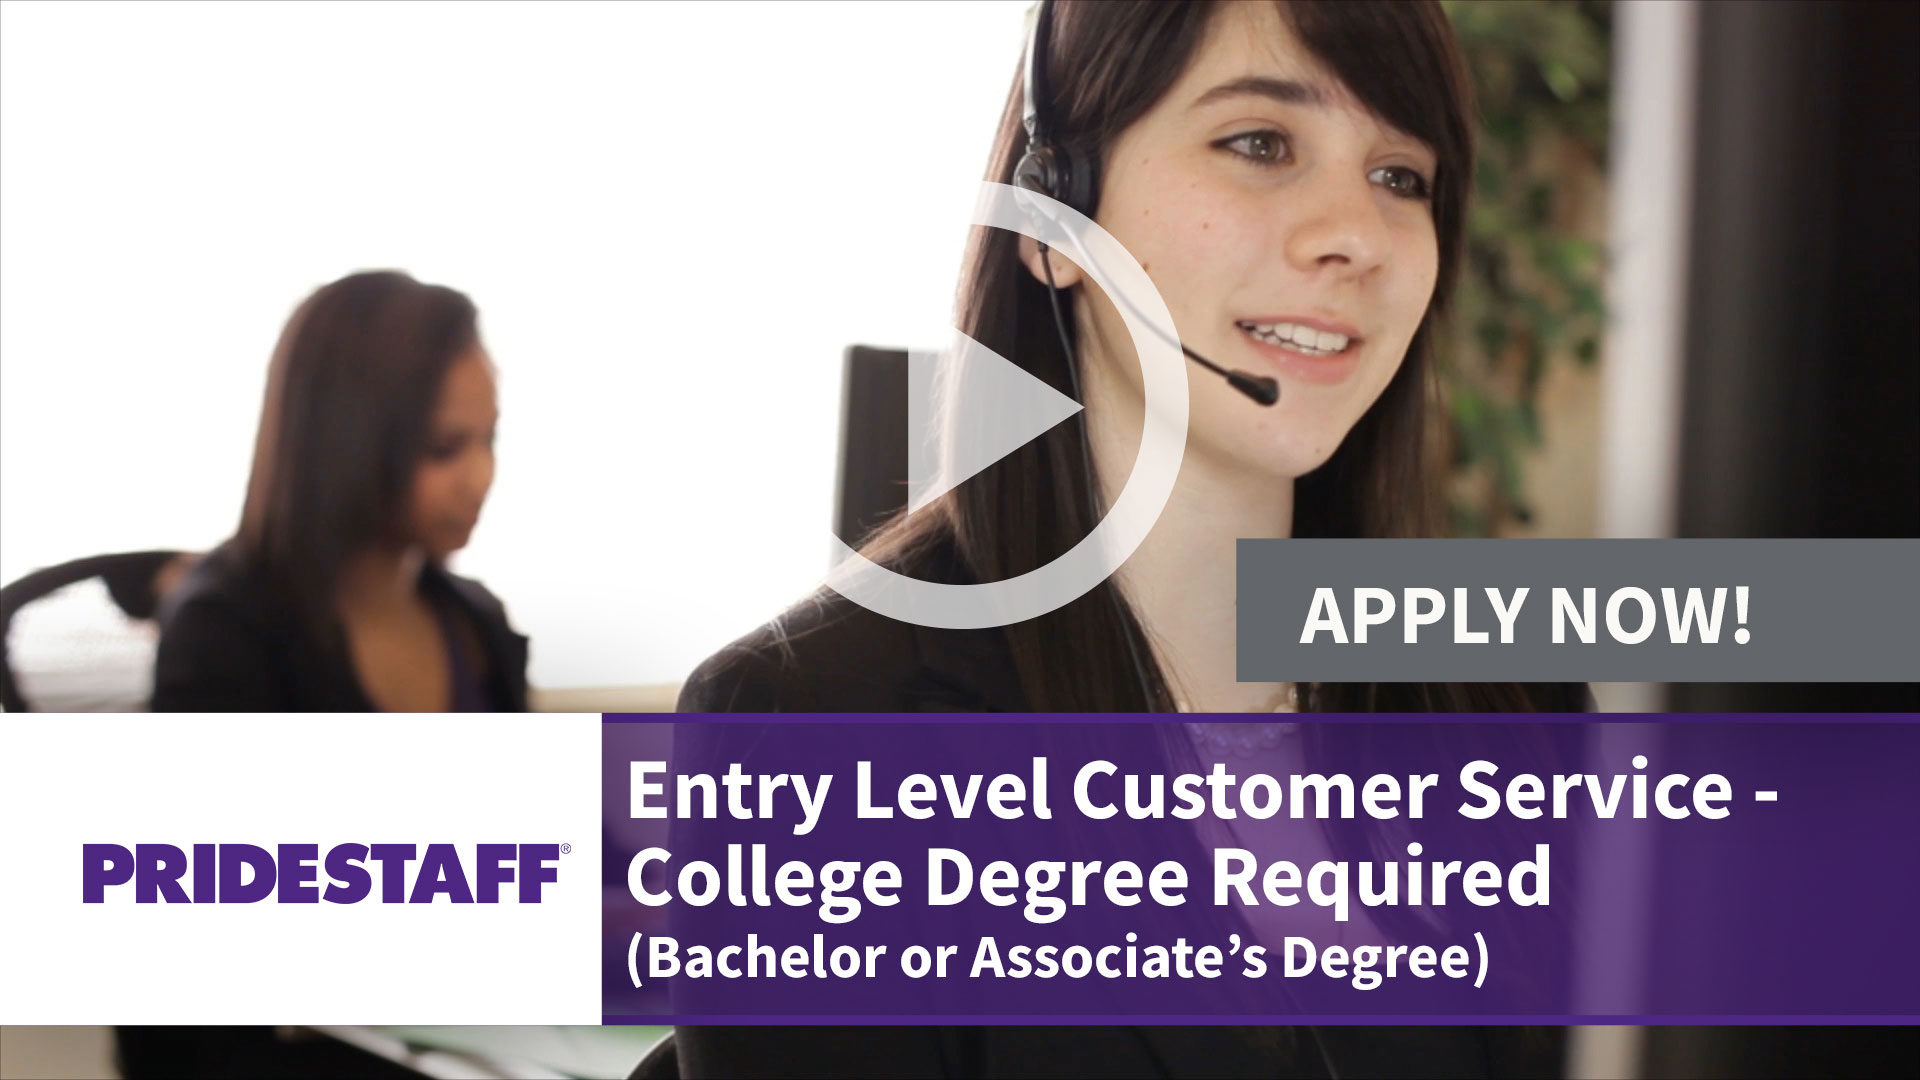 Watch our careers video for available job opening Entry Level Customer Service - College Degree Req in Irving,Texas. USA